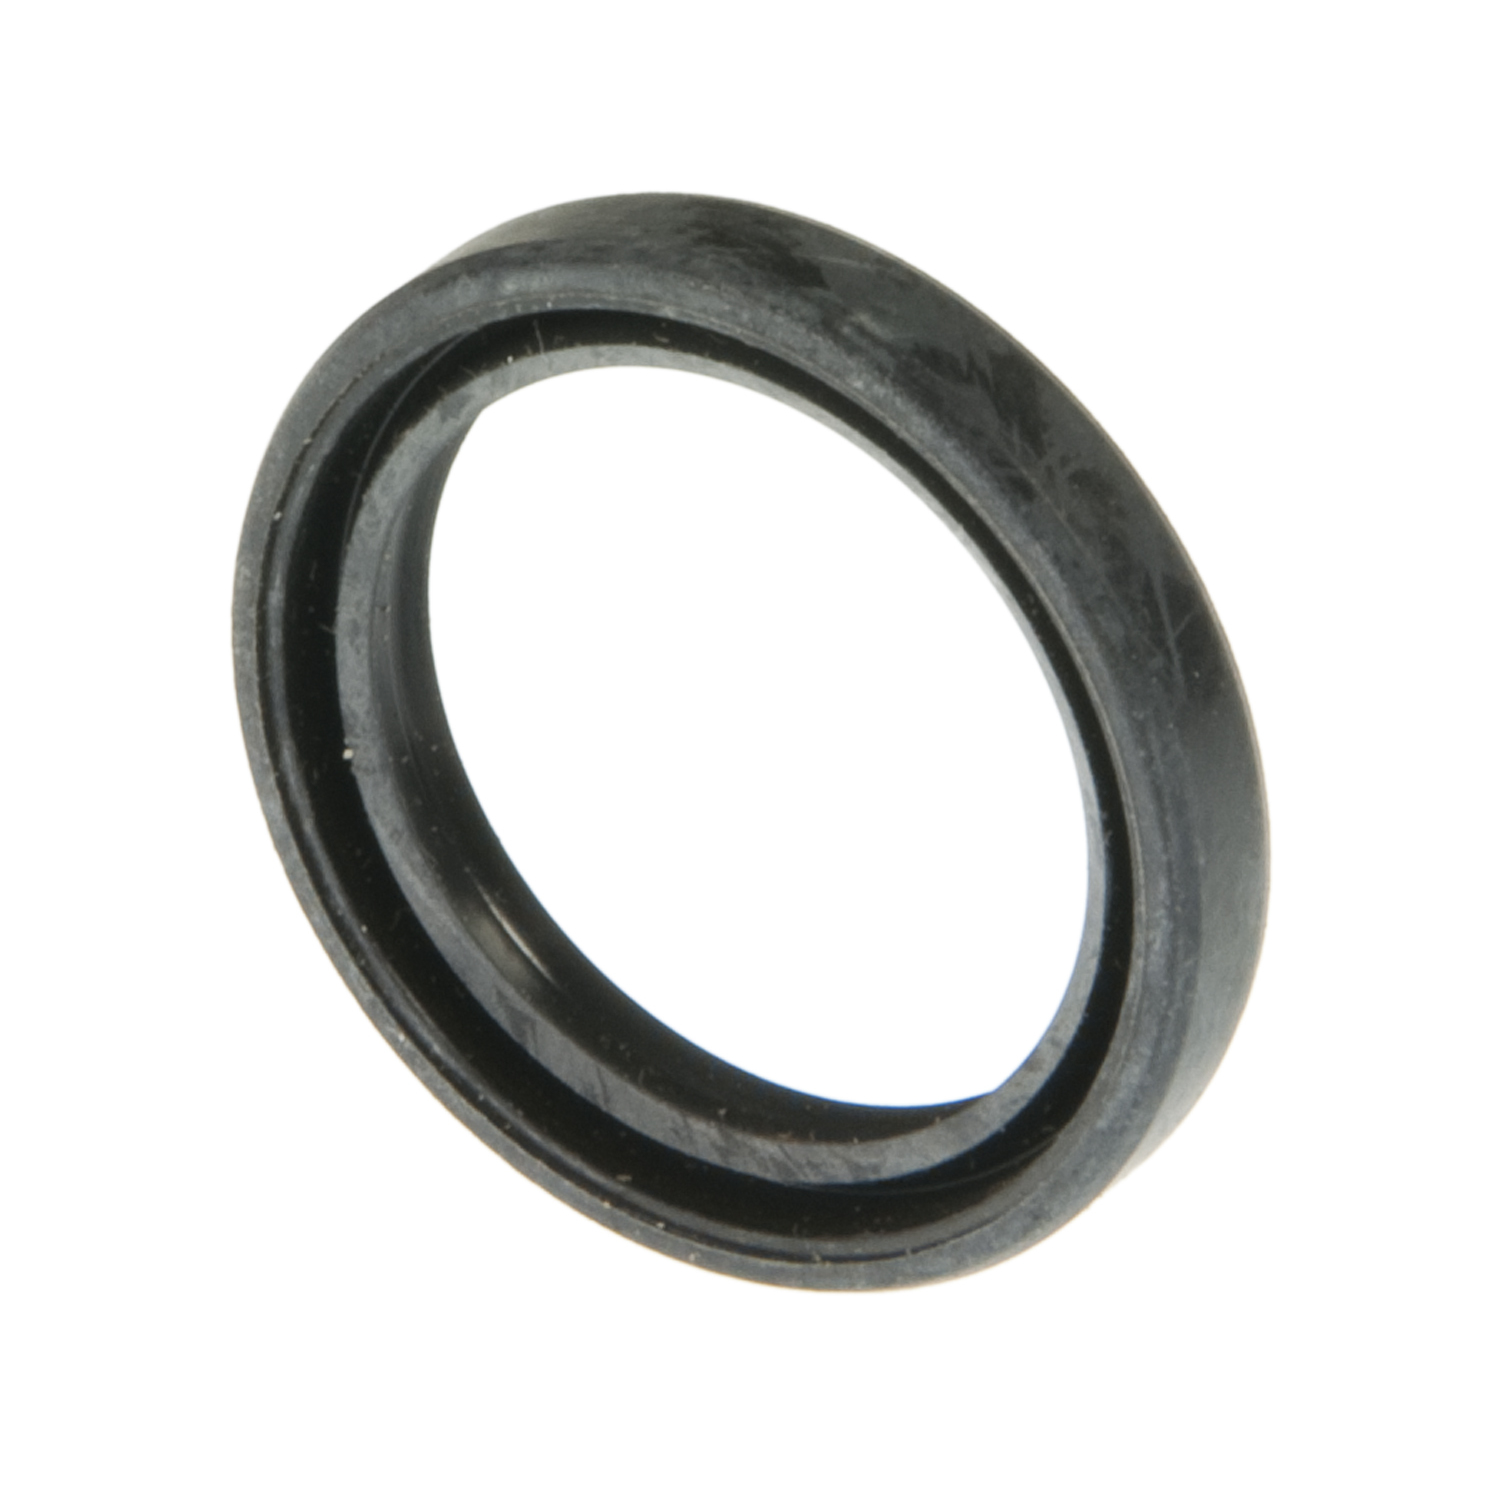 Manual Transmission Clutch Housing Seal